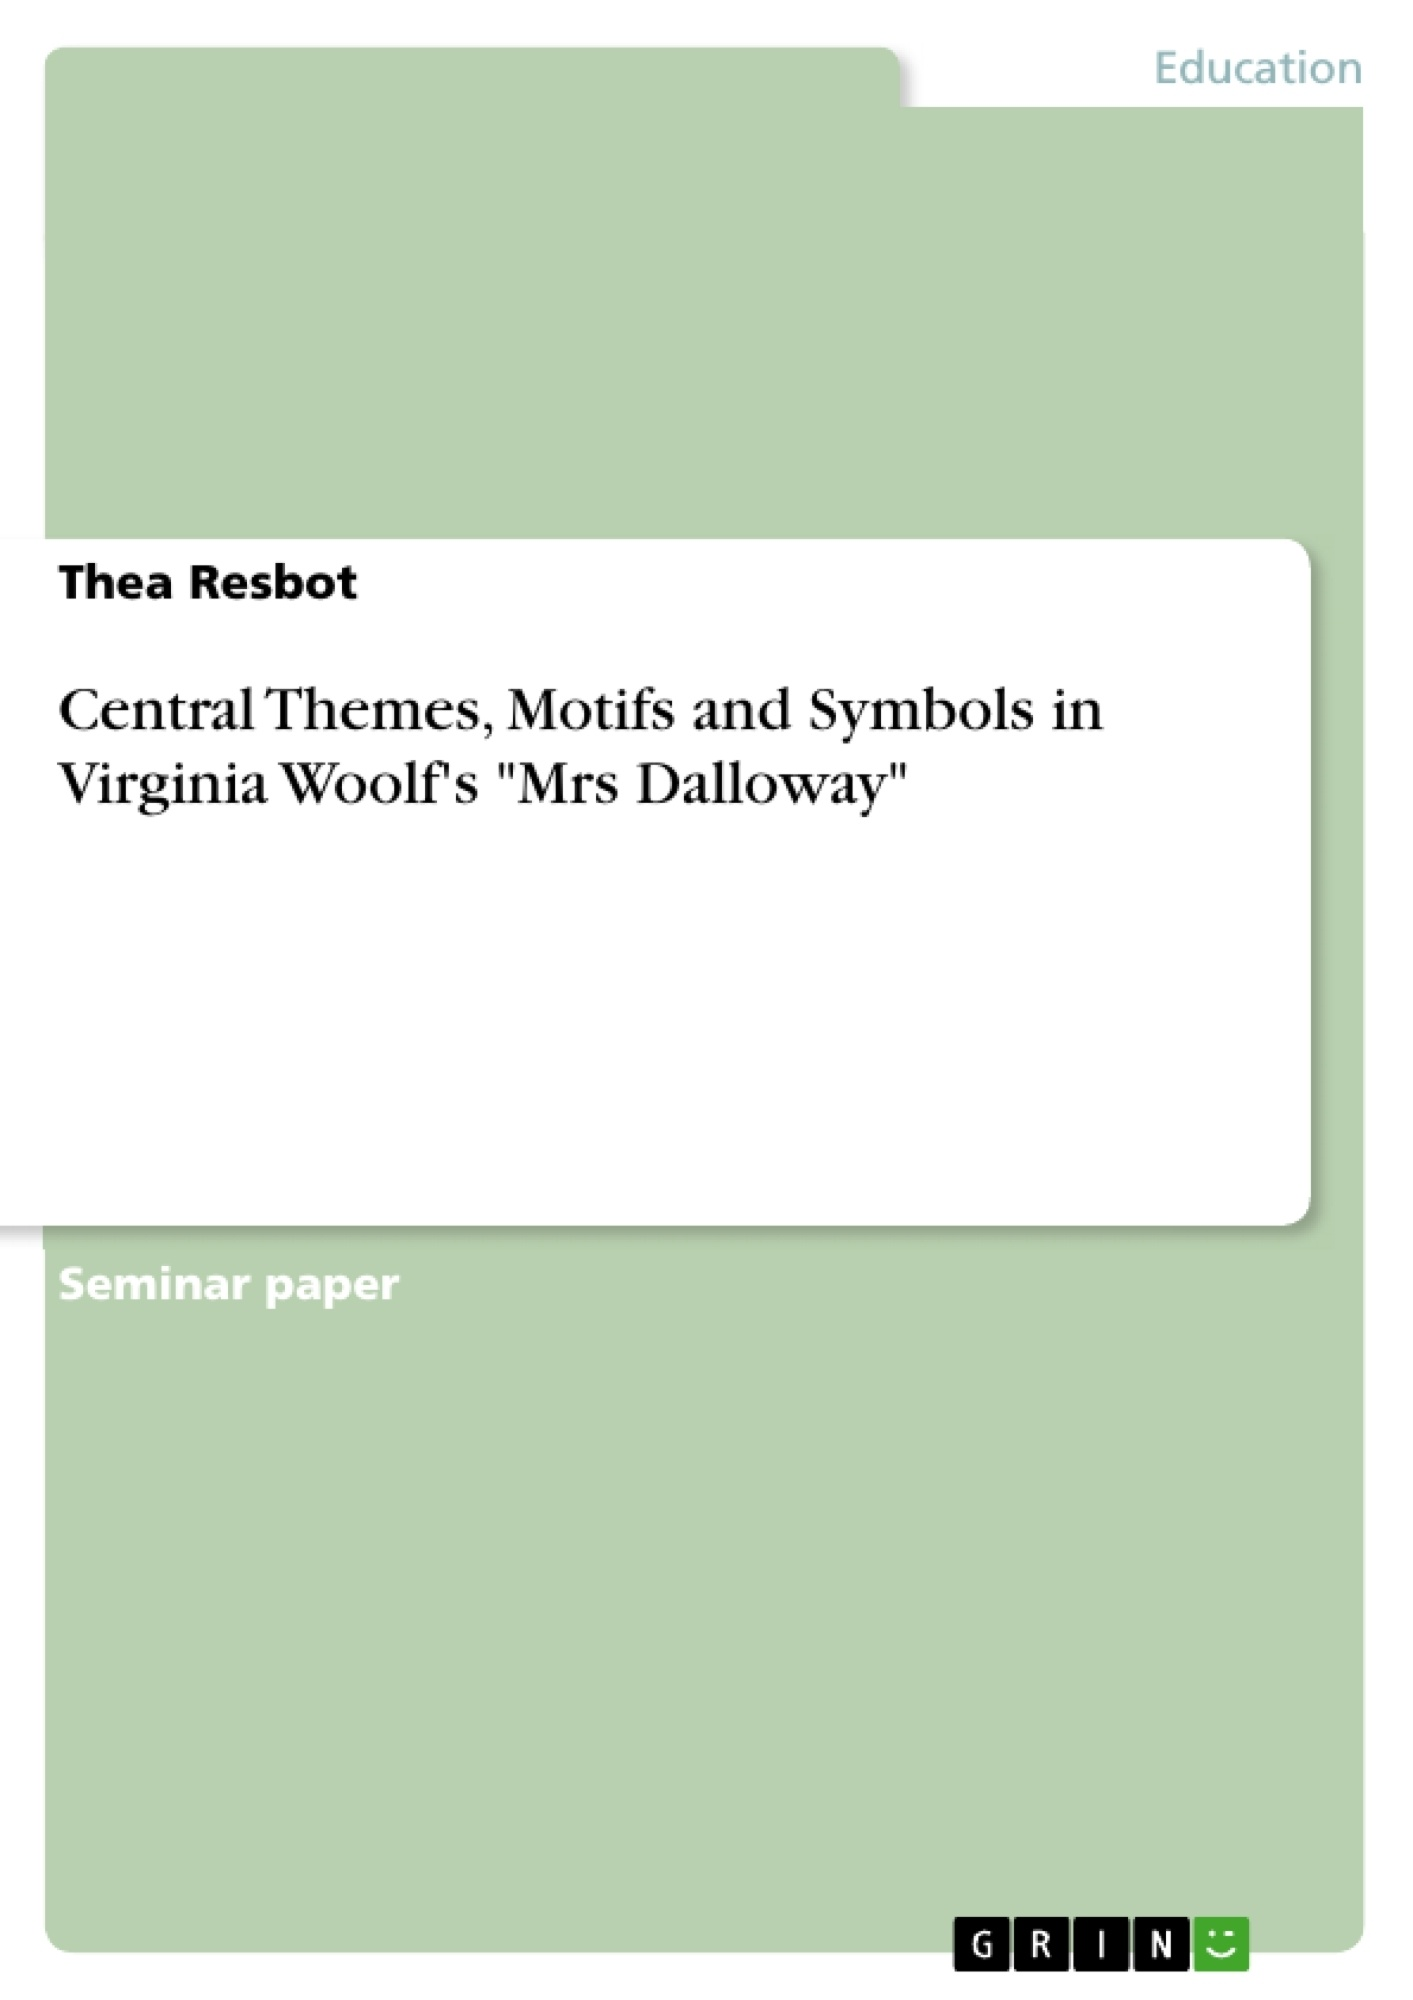 """Title: Central Themes, Motifs and Symbols in Virginia Woolf's """"Mrs Dalloway"""""""